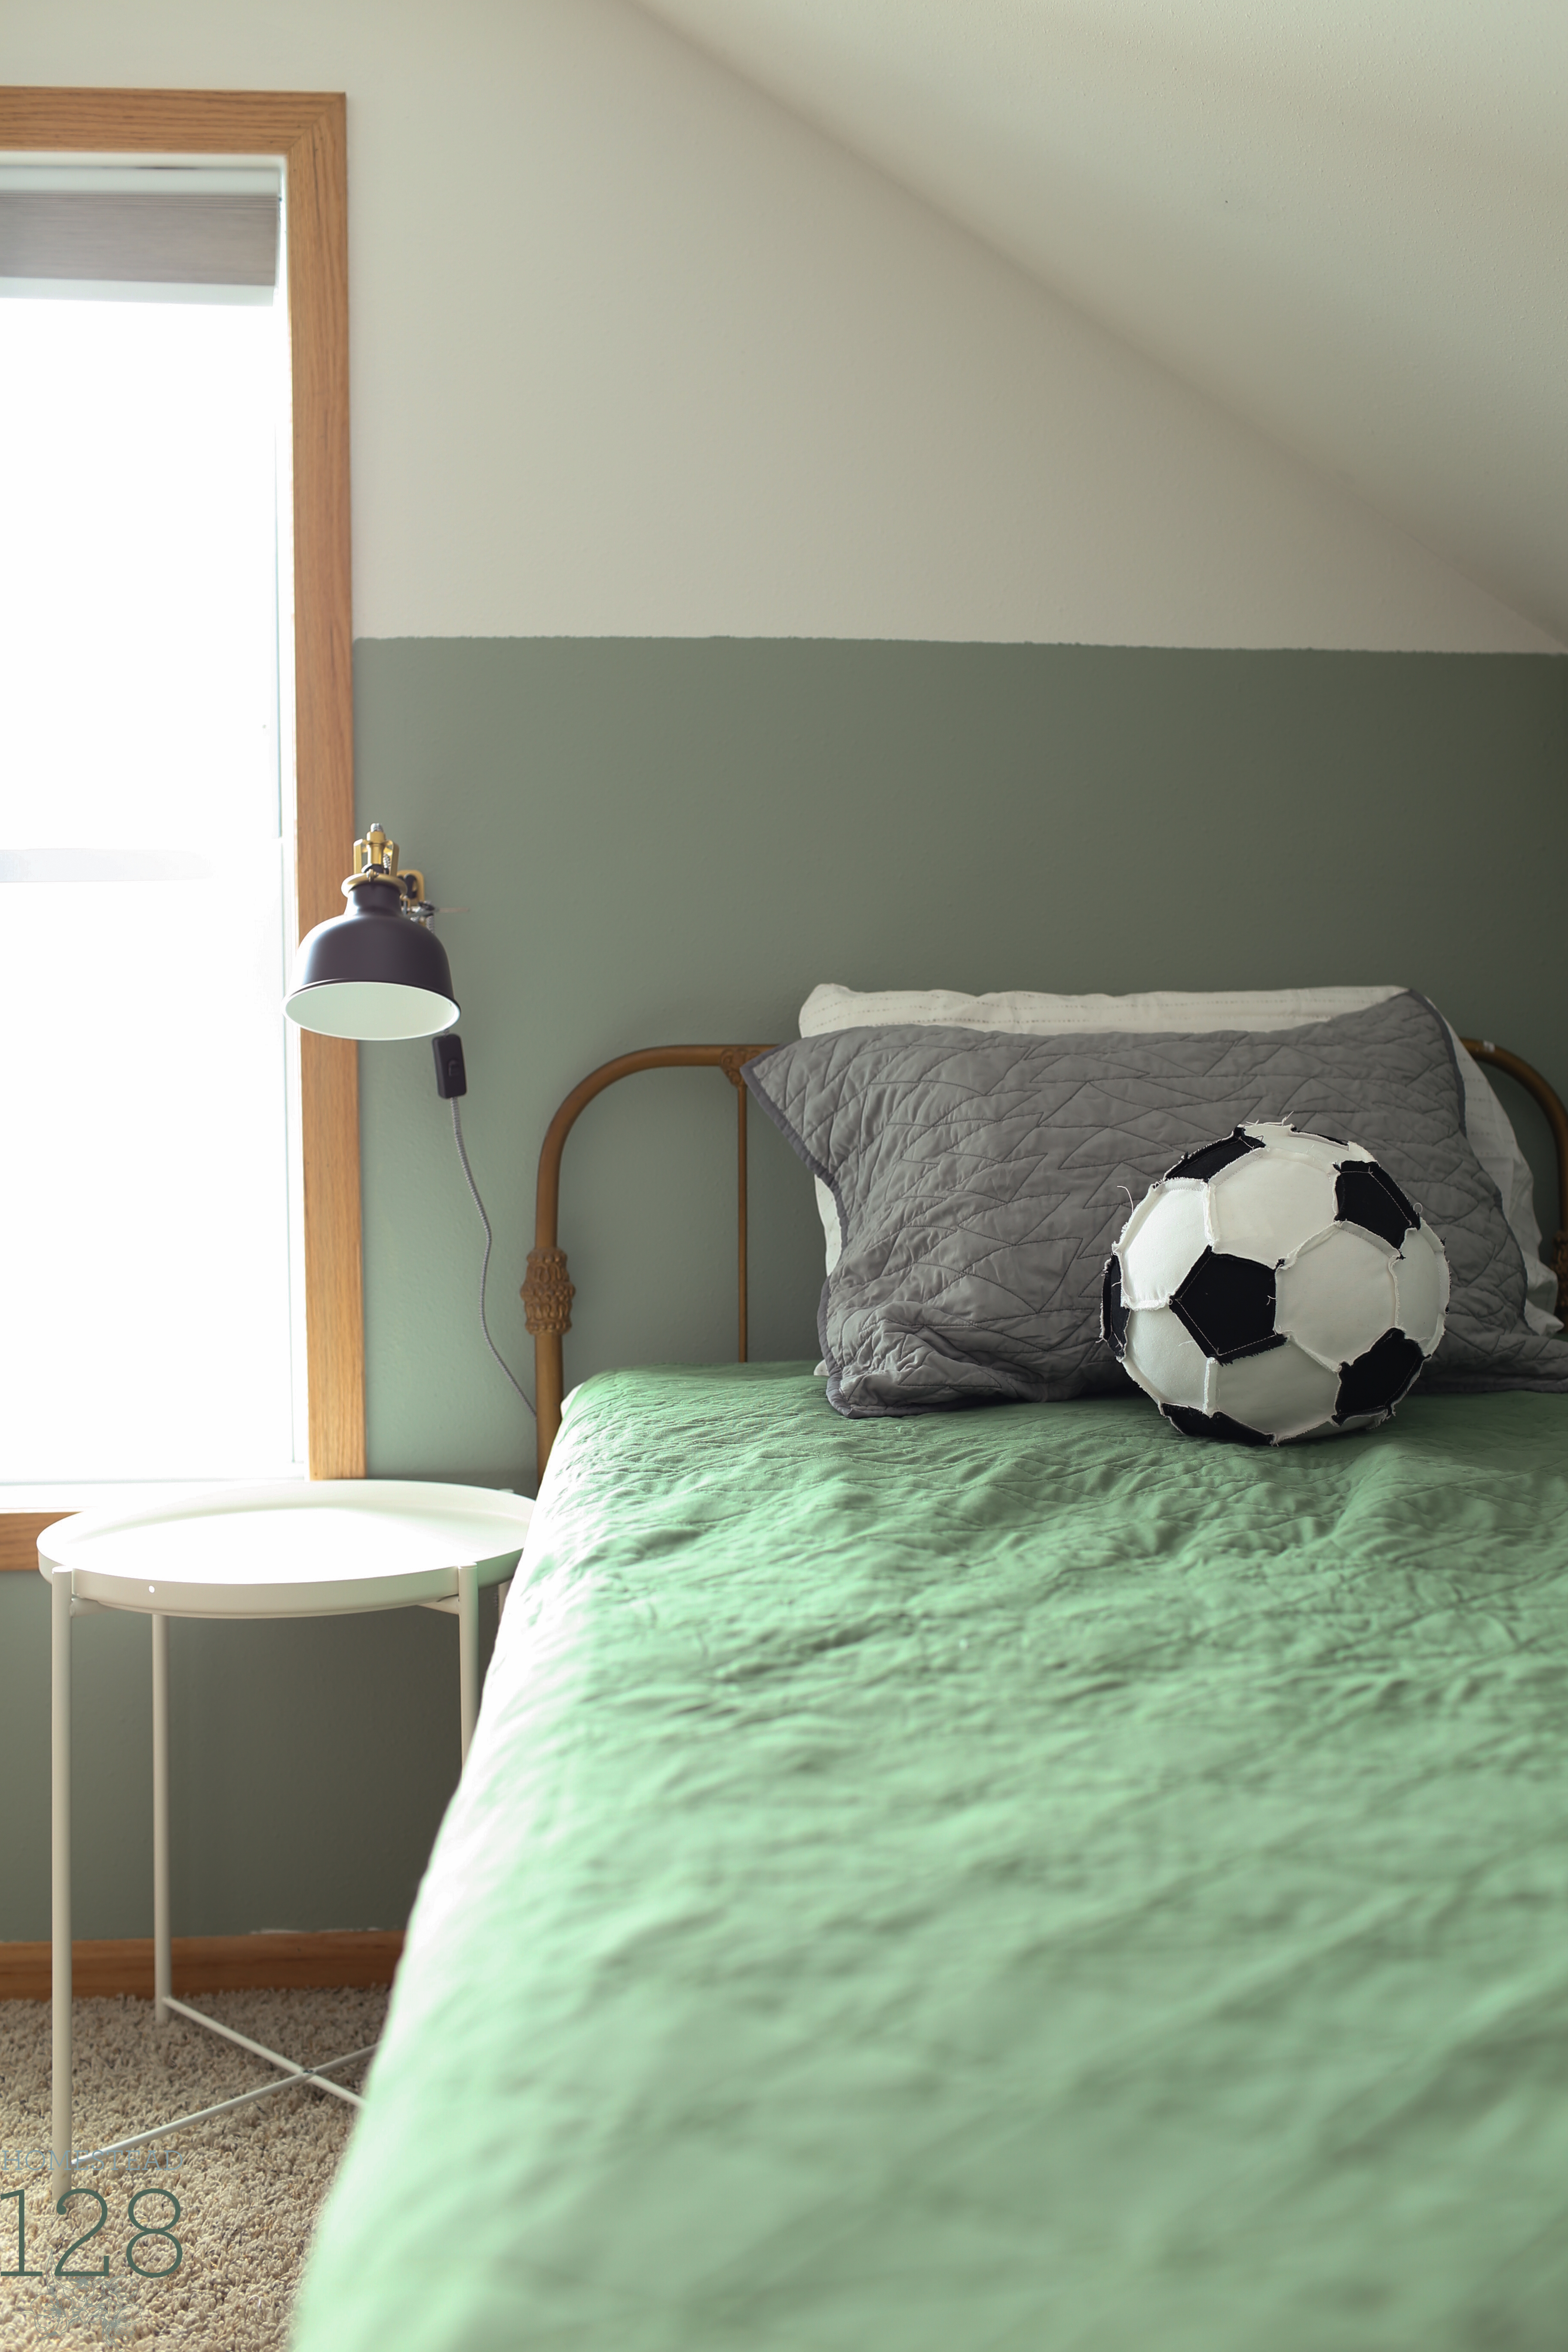 Boys bedroom wall sconce and green, gray and white colors.